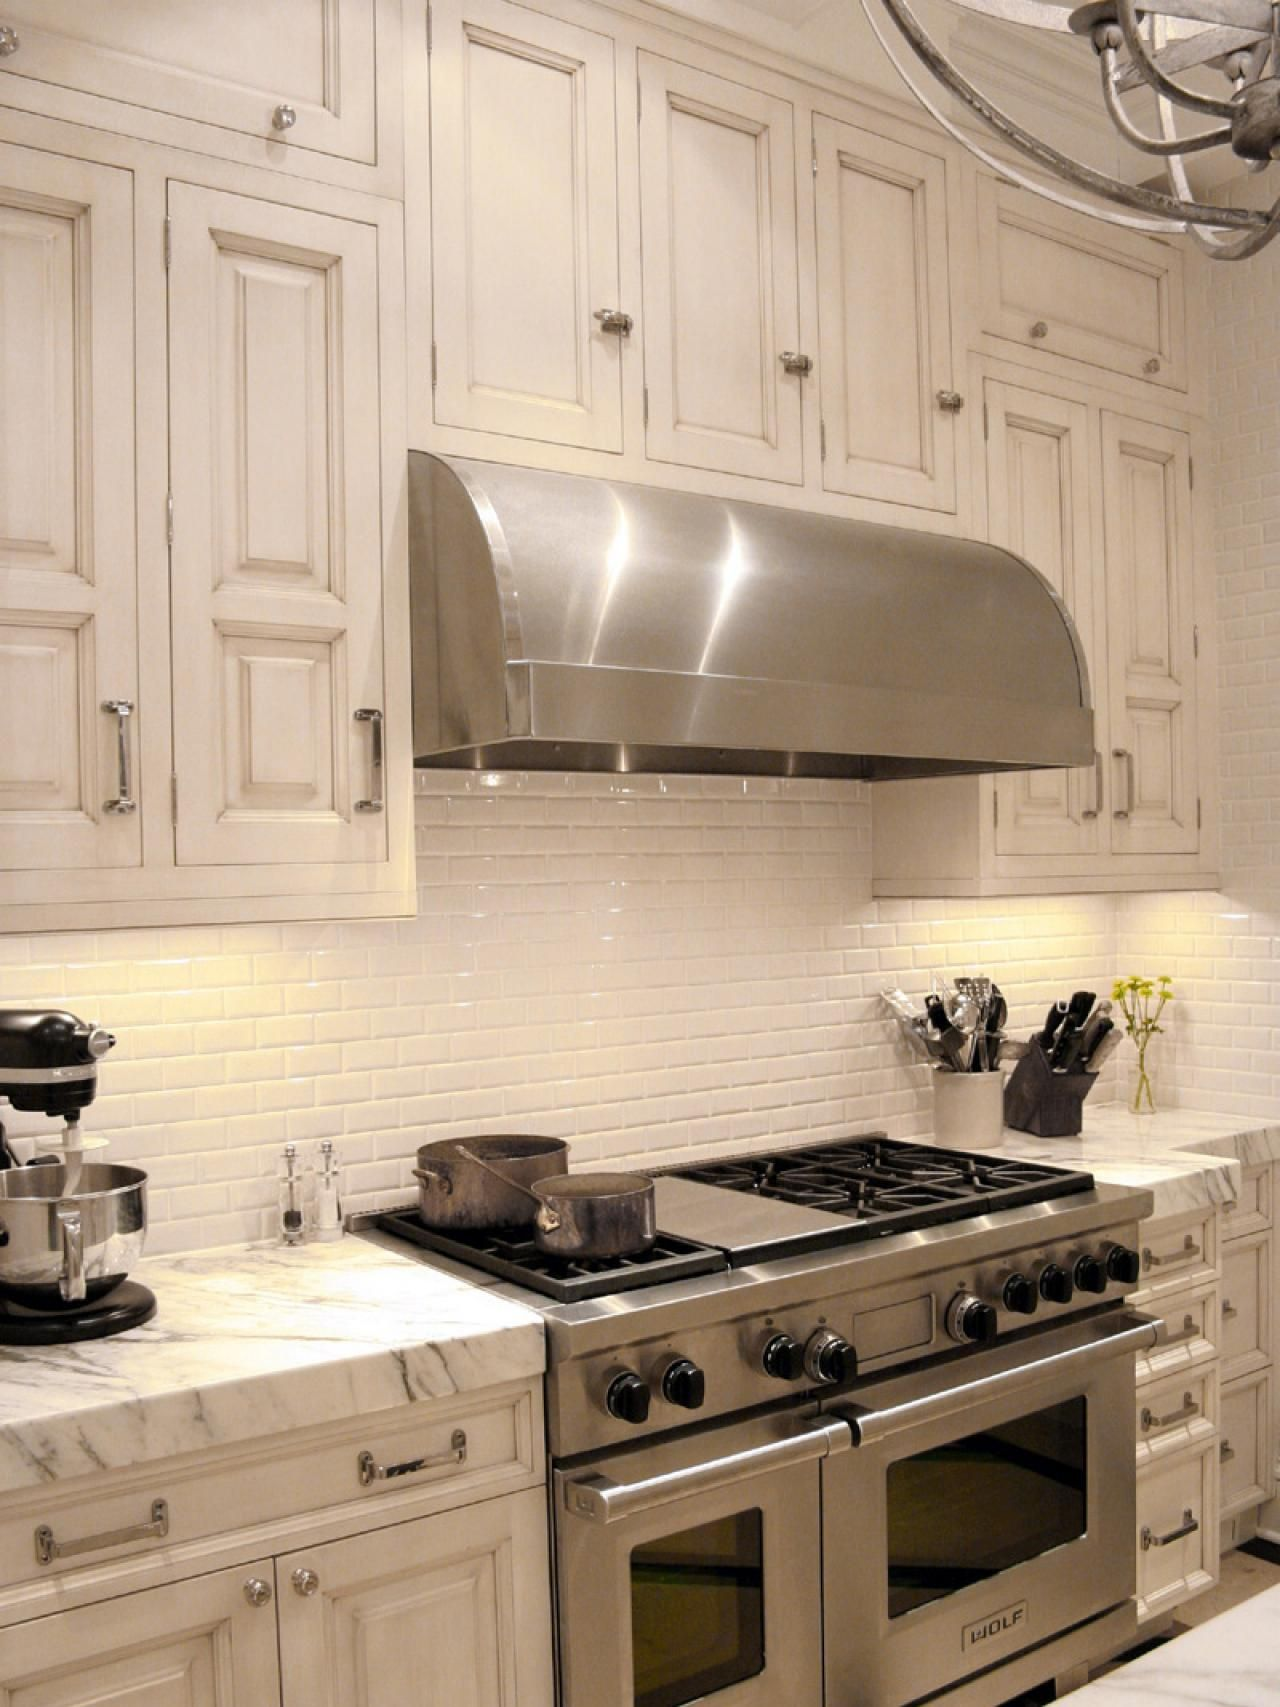 11 Beautiful Kitchen Backsplashes Kitchen Countertop Materials